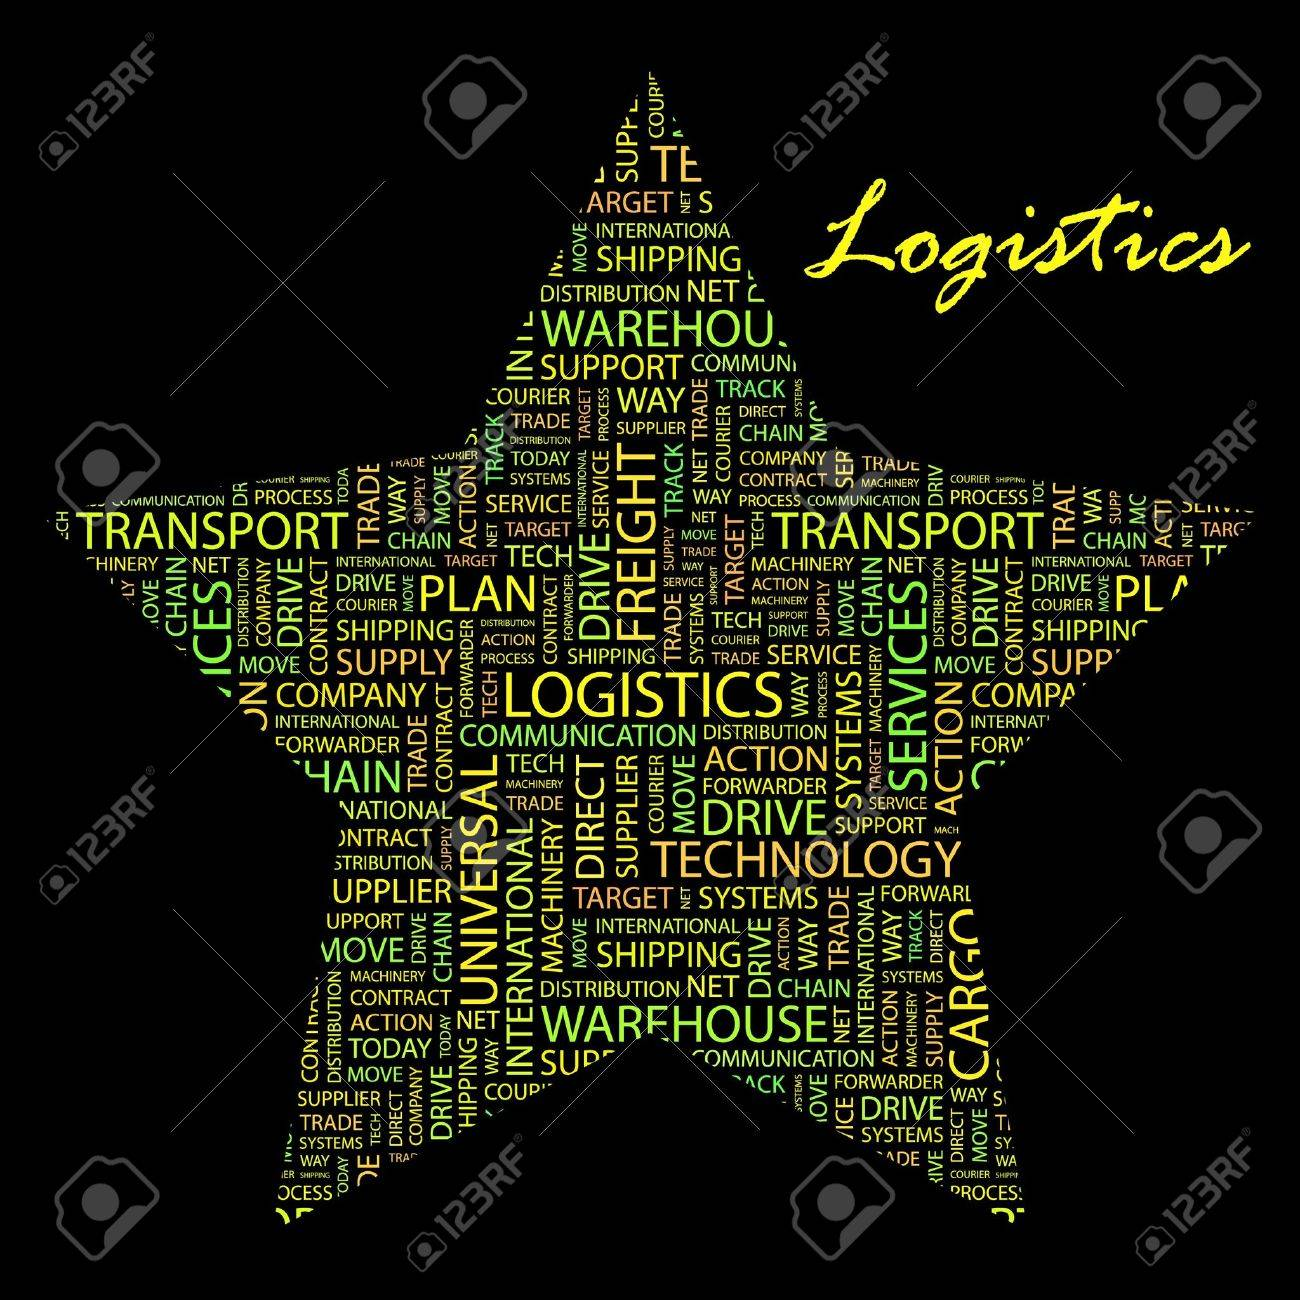 LOGISTICS. Word collage on black background. Vector illustration. Illustration with different association terms. Stock Vector - 9904491